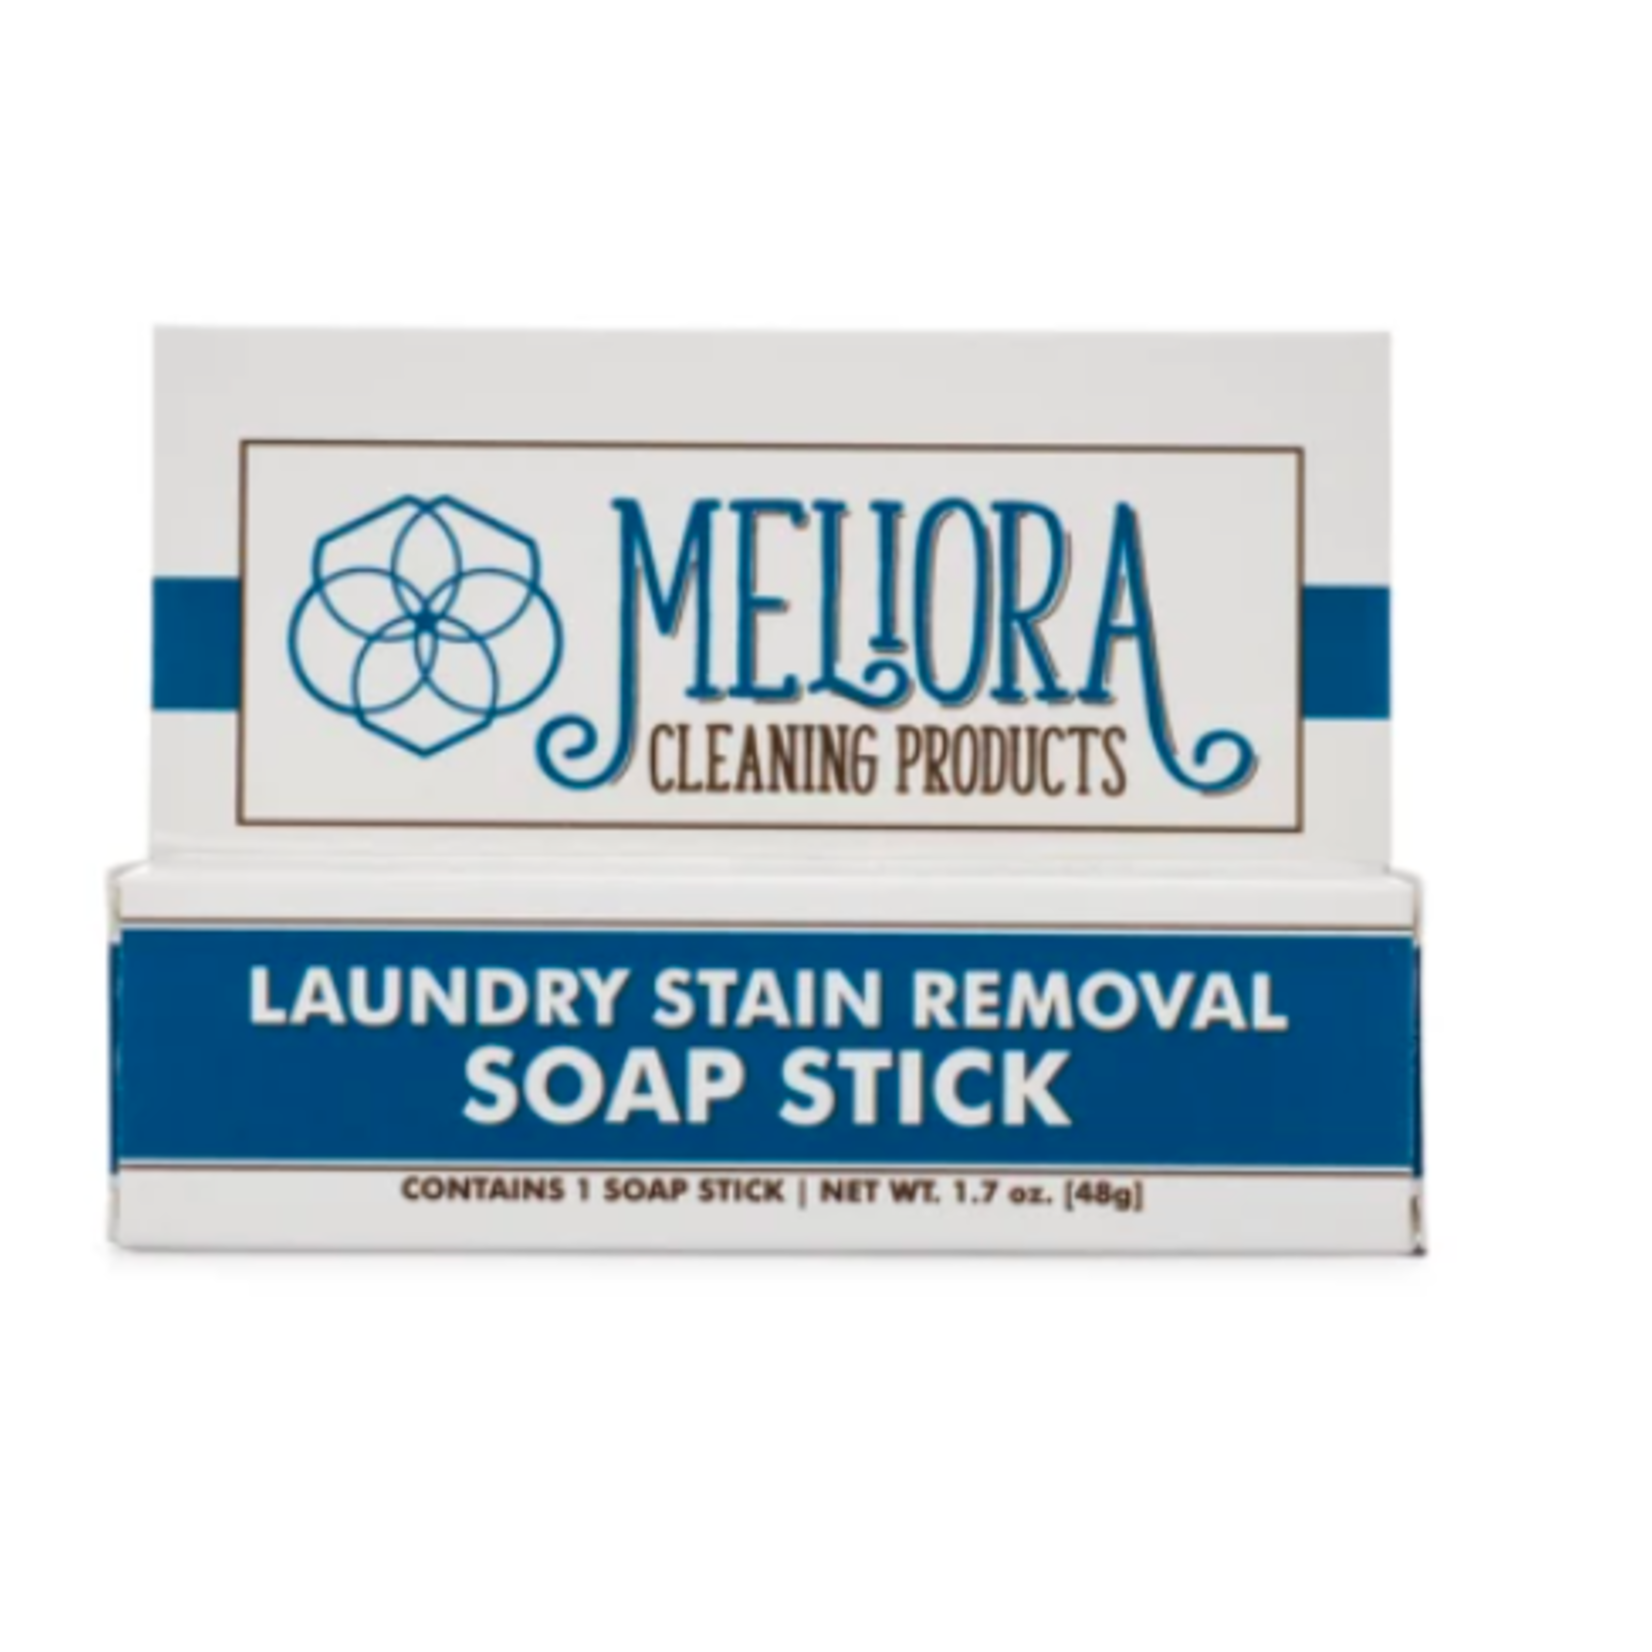 Meliora Cleaning Products Meliora Soap Stick for Laundry Stain Removal